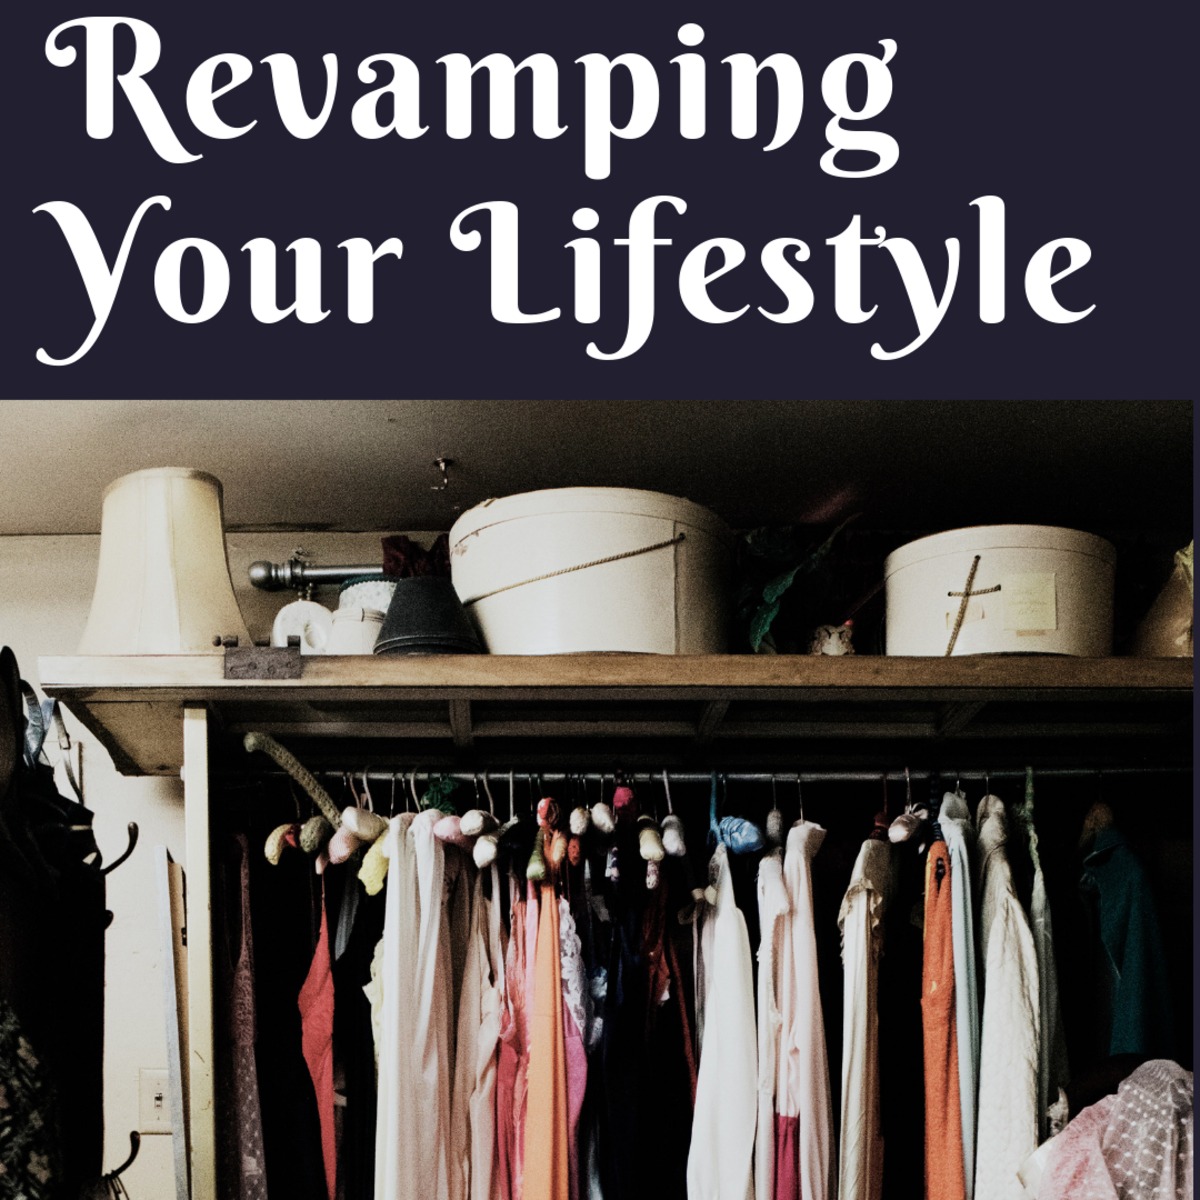 A Baby Boomer Grows Up and Revamps Her Lifestyle Starting With the Closet